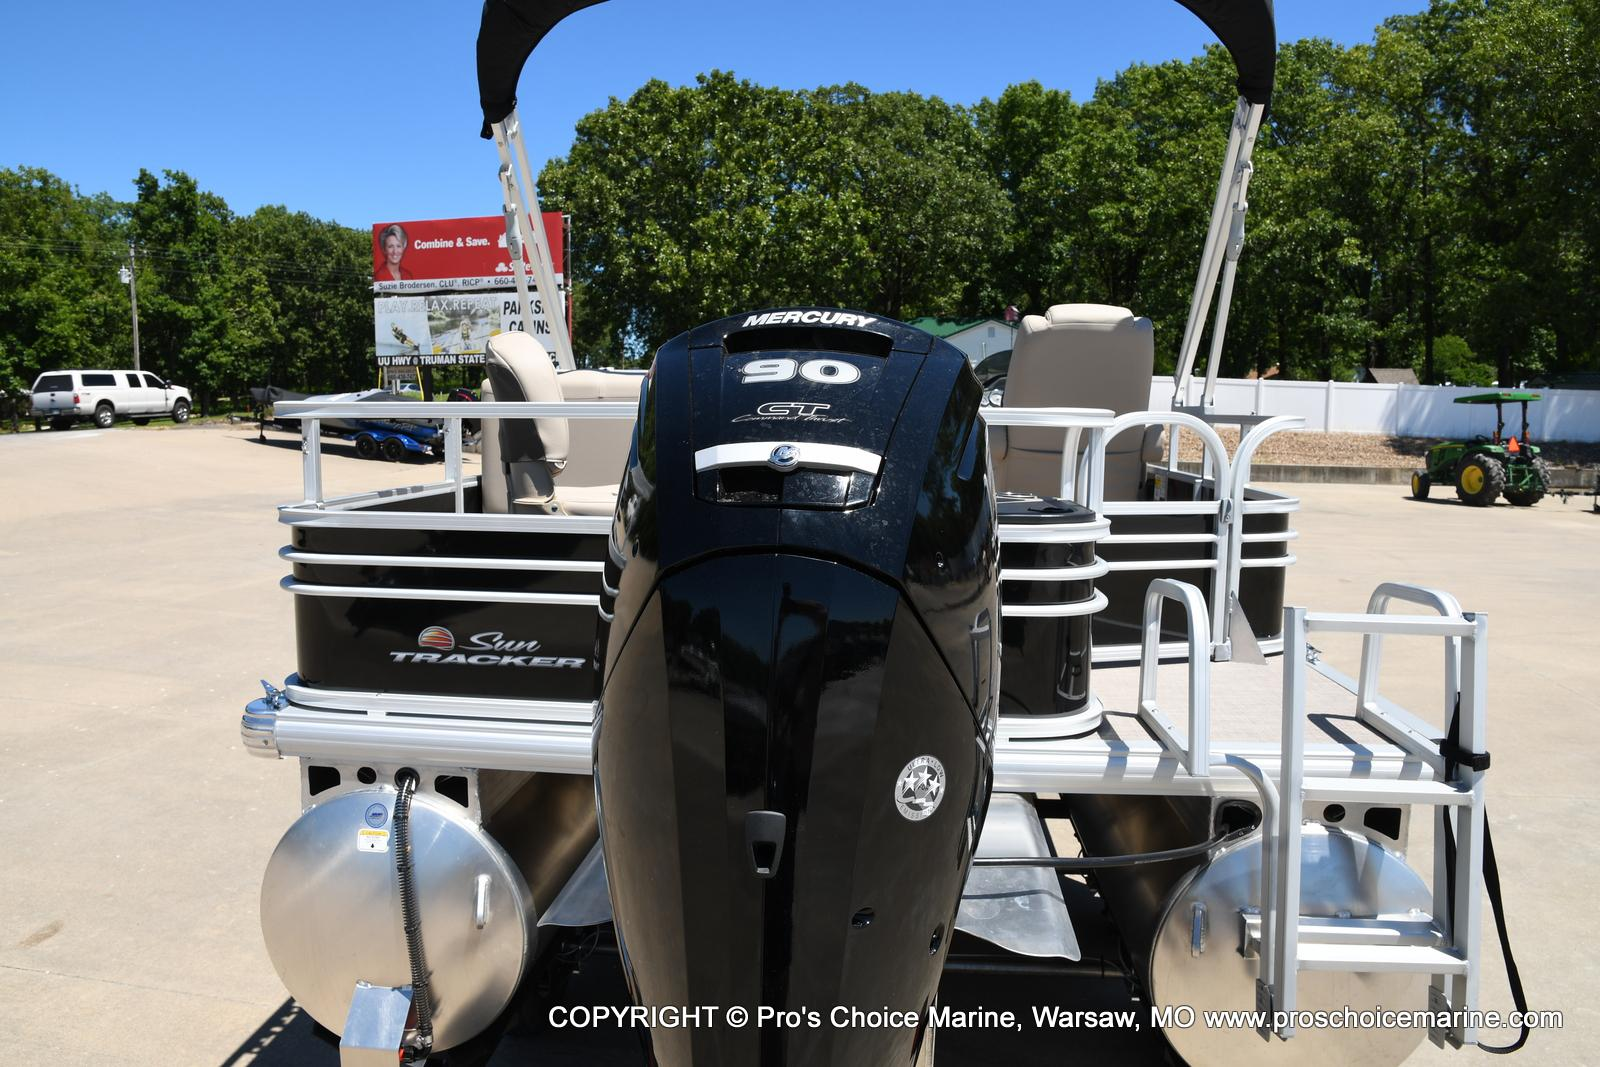 2021 Sun Tracker boat for sale, model of the boat is Fishin' Barge 20 DLX & Image # 19 of 50